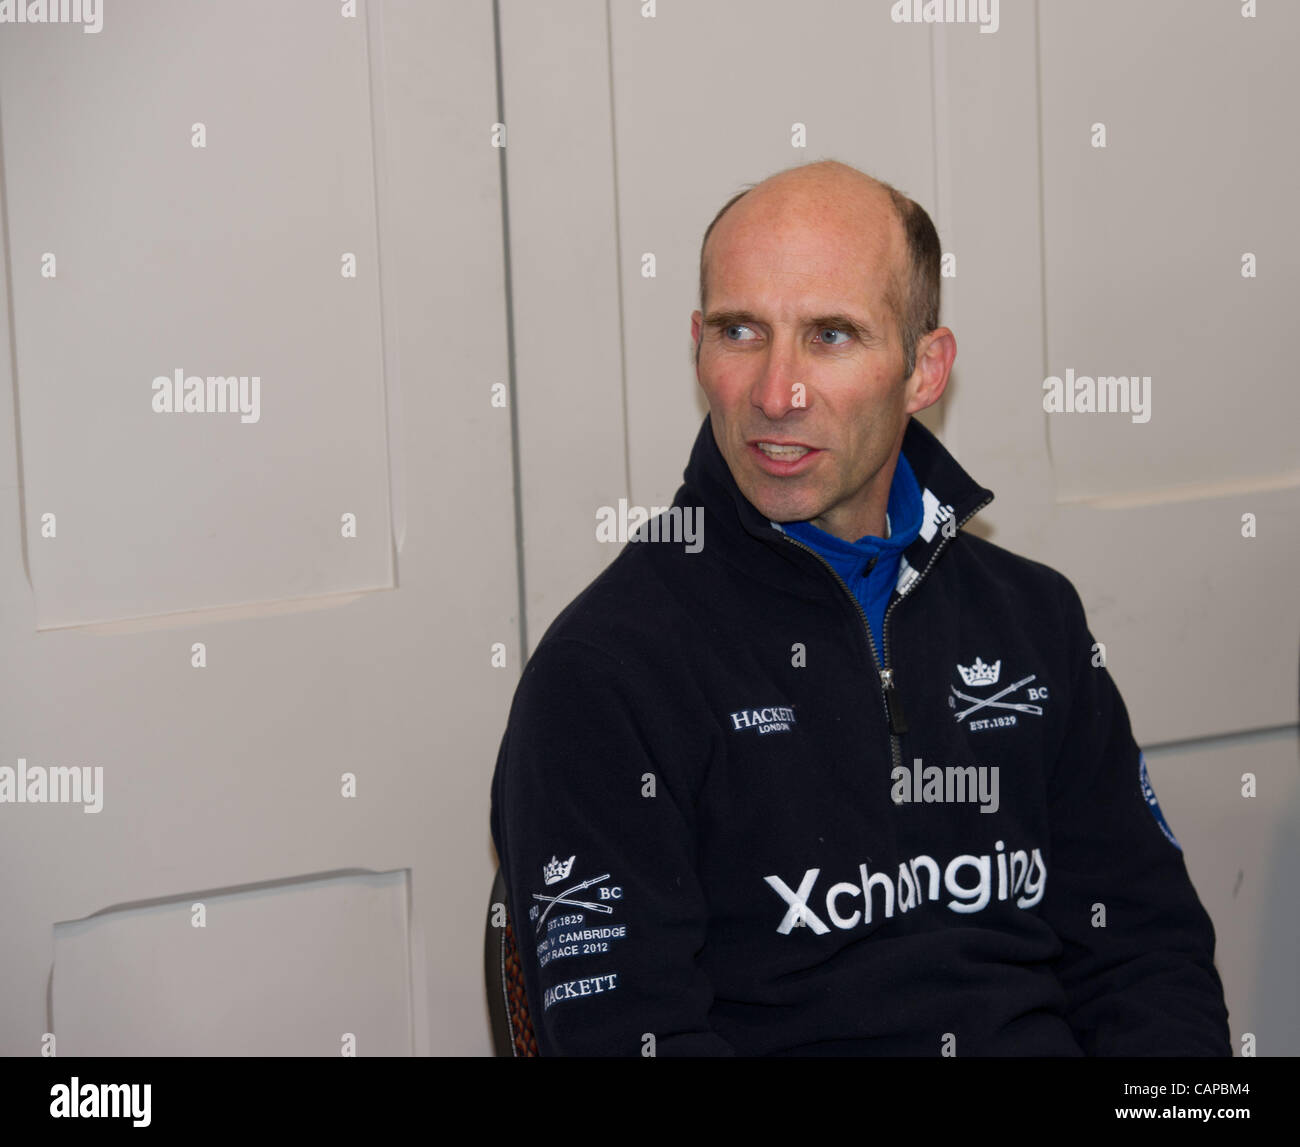 05/04/2012. The 158th Xchanging Oxford & Cambridge Universities Boat Race.  Oxford Coach Sean Bowden addresses - Stock Image